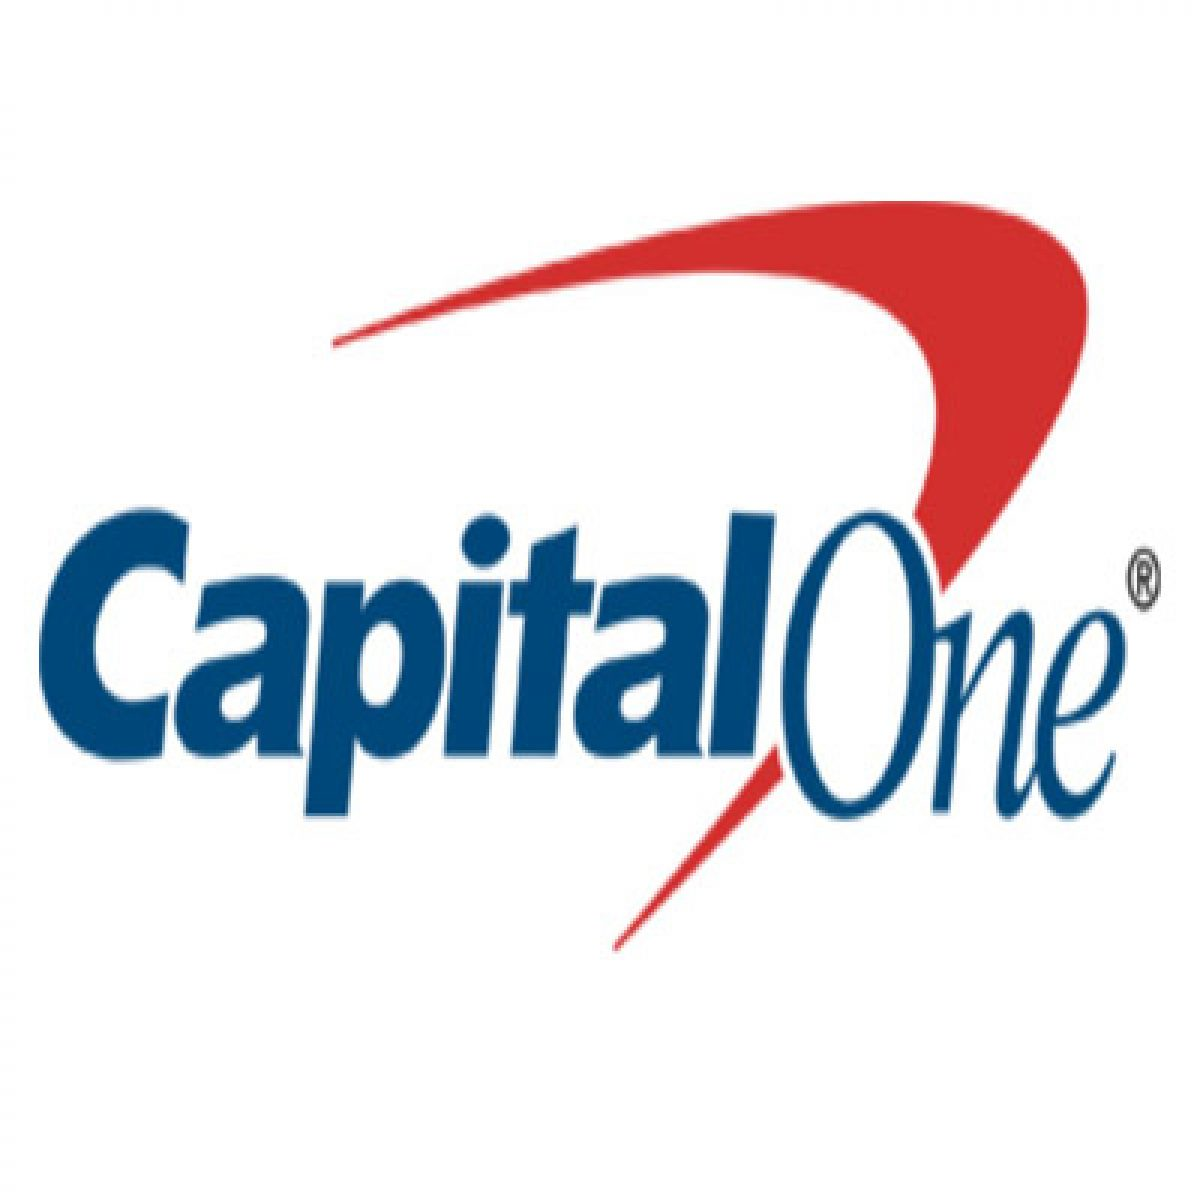 Capital one logo 1200x1200 1